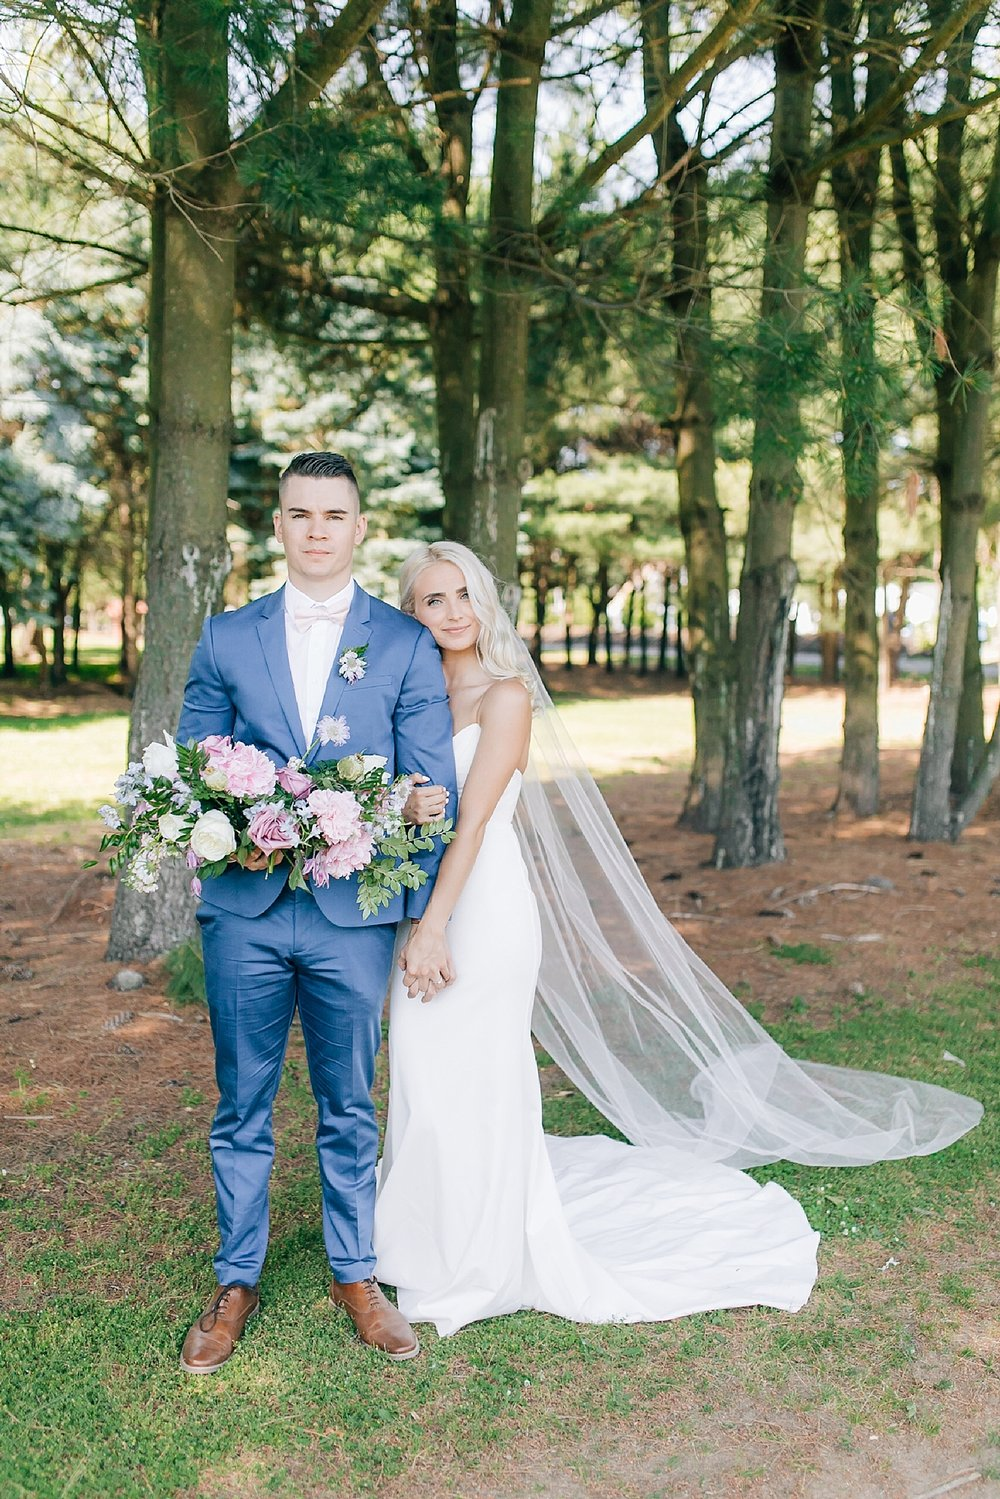 A Unique Outdoor Summer Wedding at Bast Brothers Garden Center by Magdalena Studios_0023.jpg